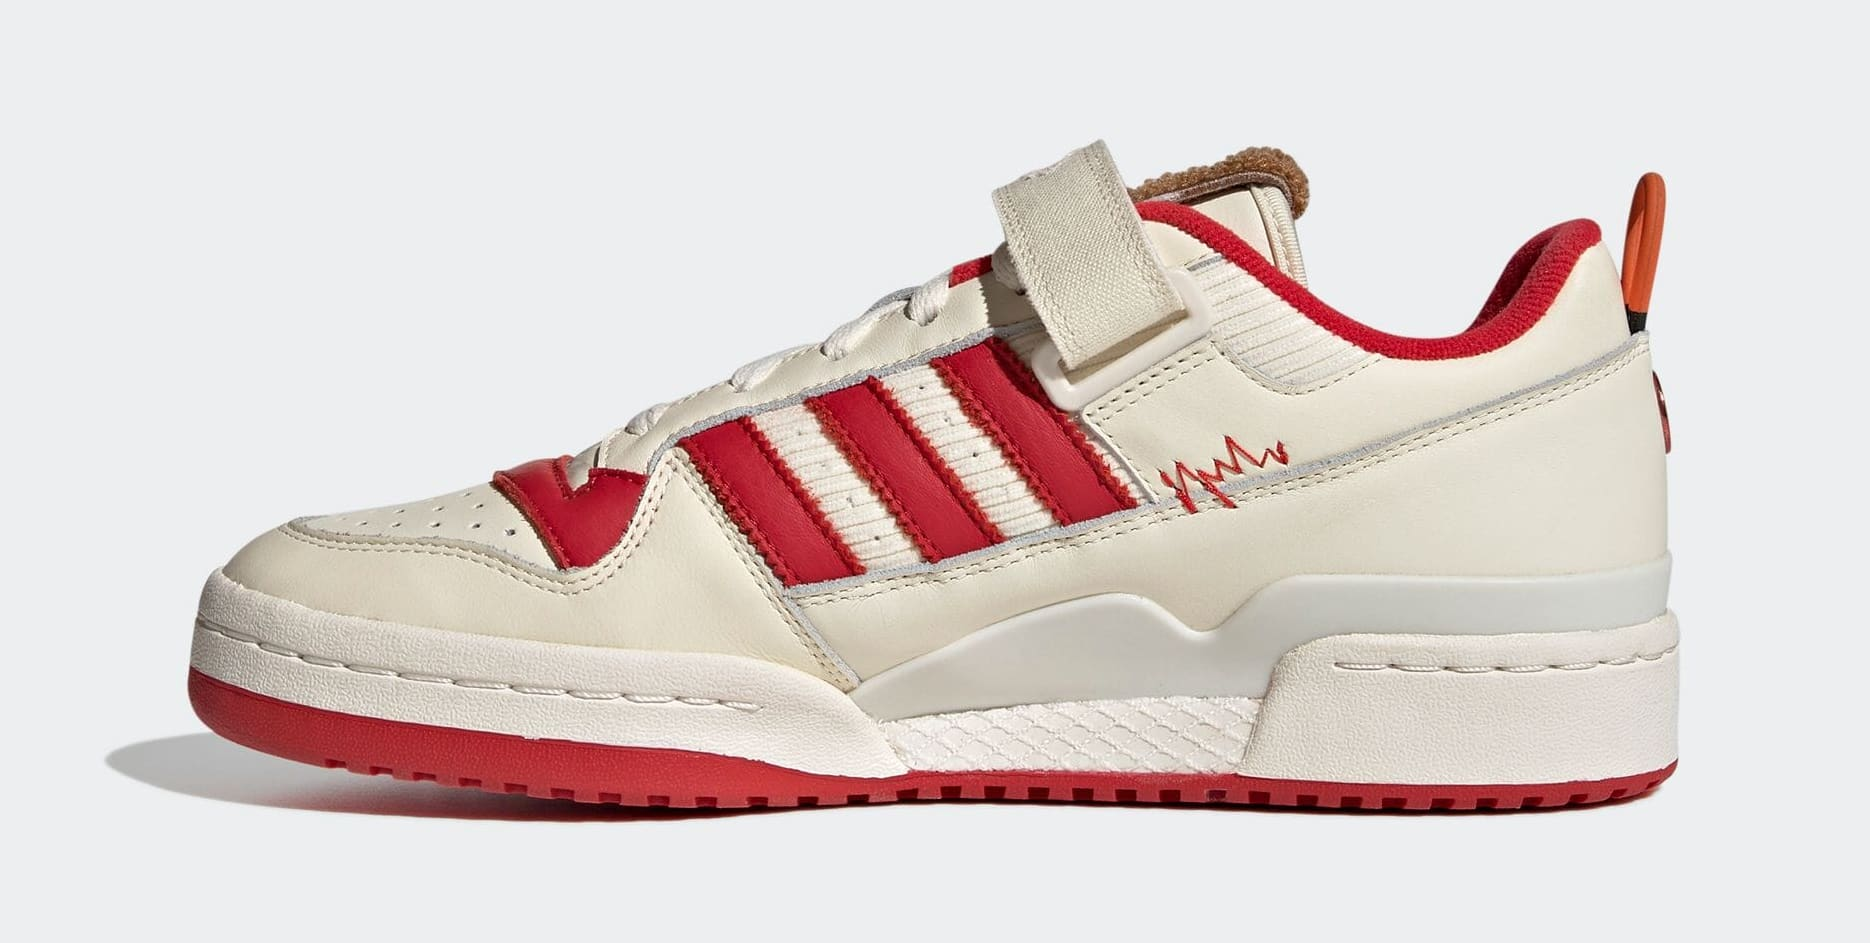 Home Alone x Adidas Forum Low GZ4378 Medial